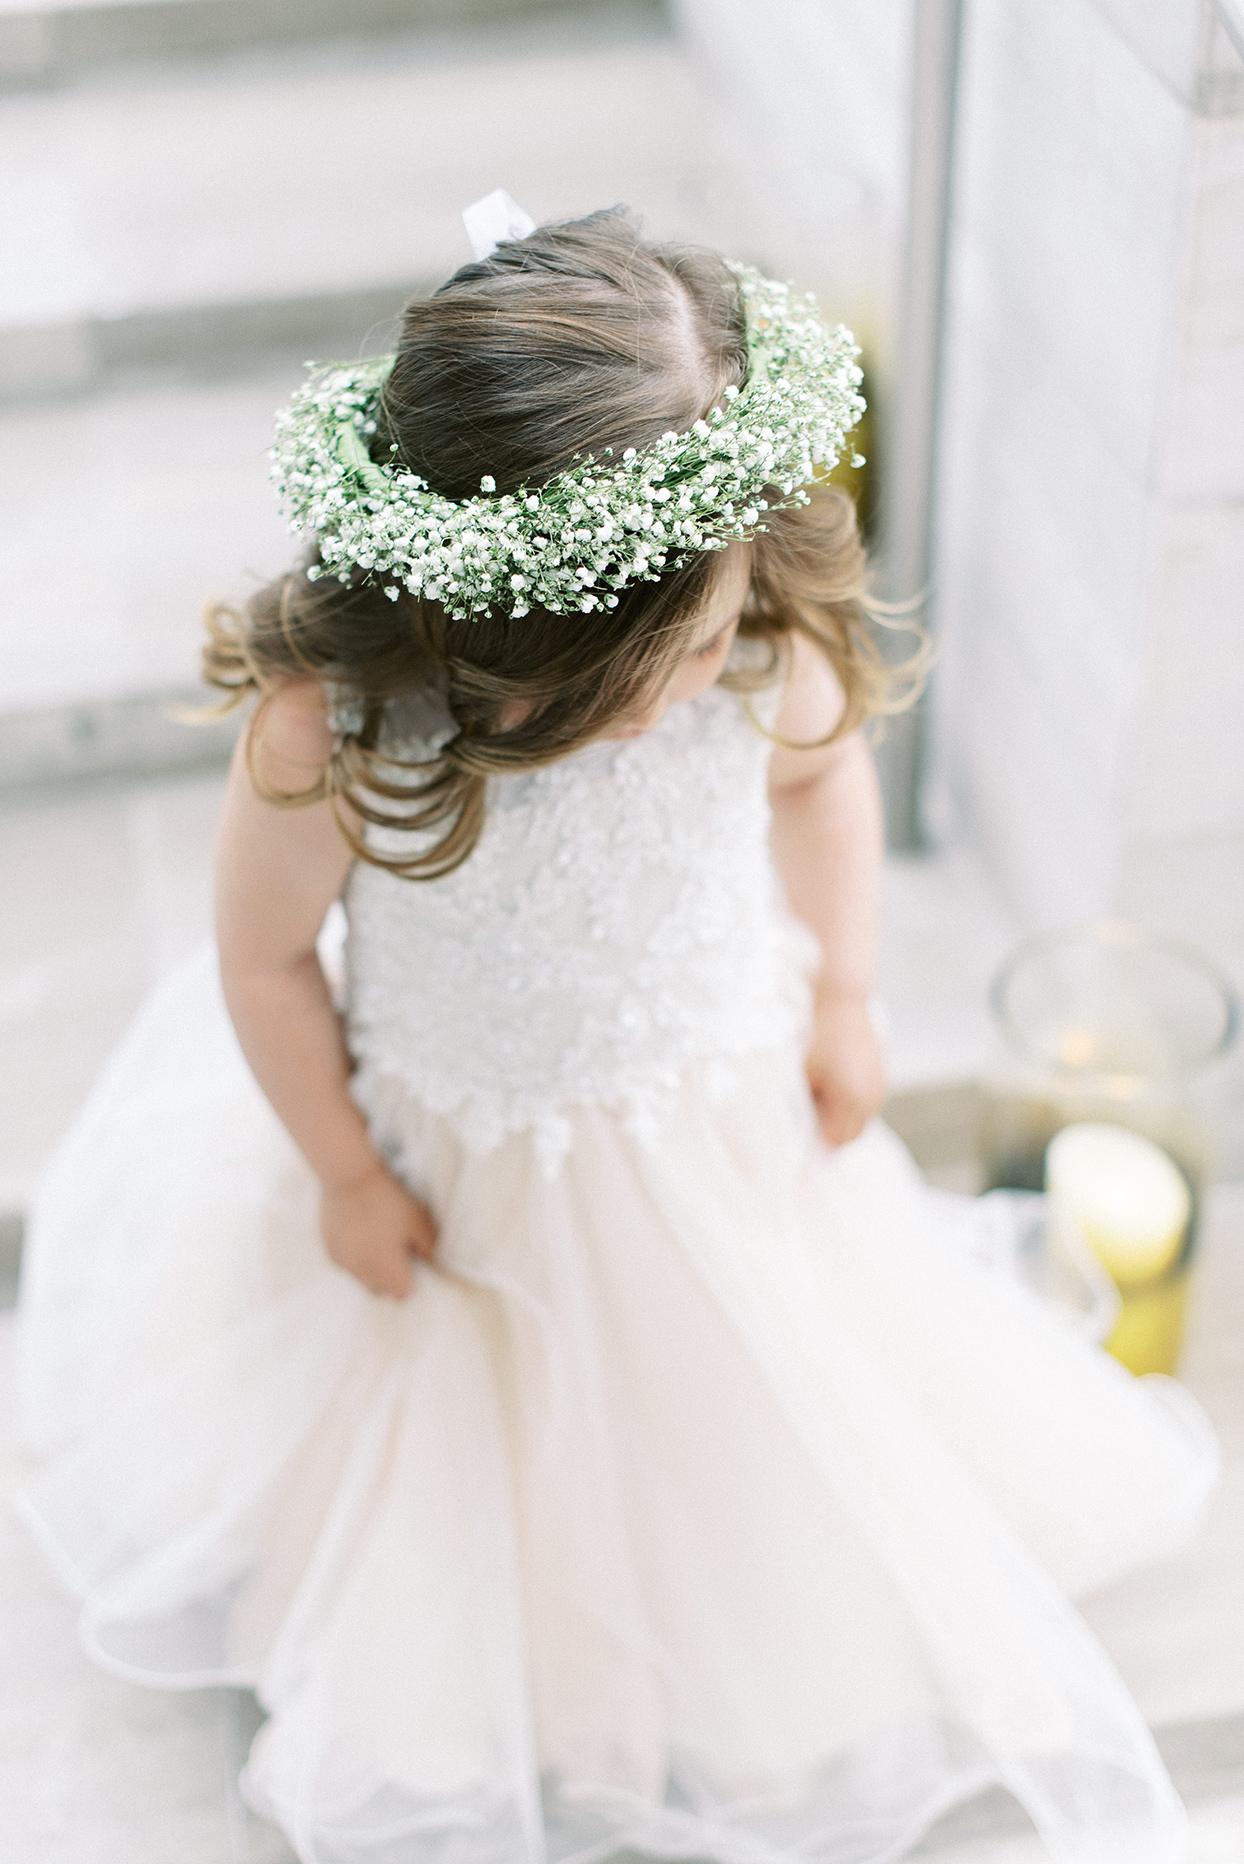 Flower girl wearing crown of baby's breath